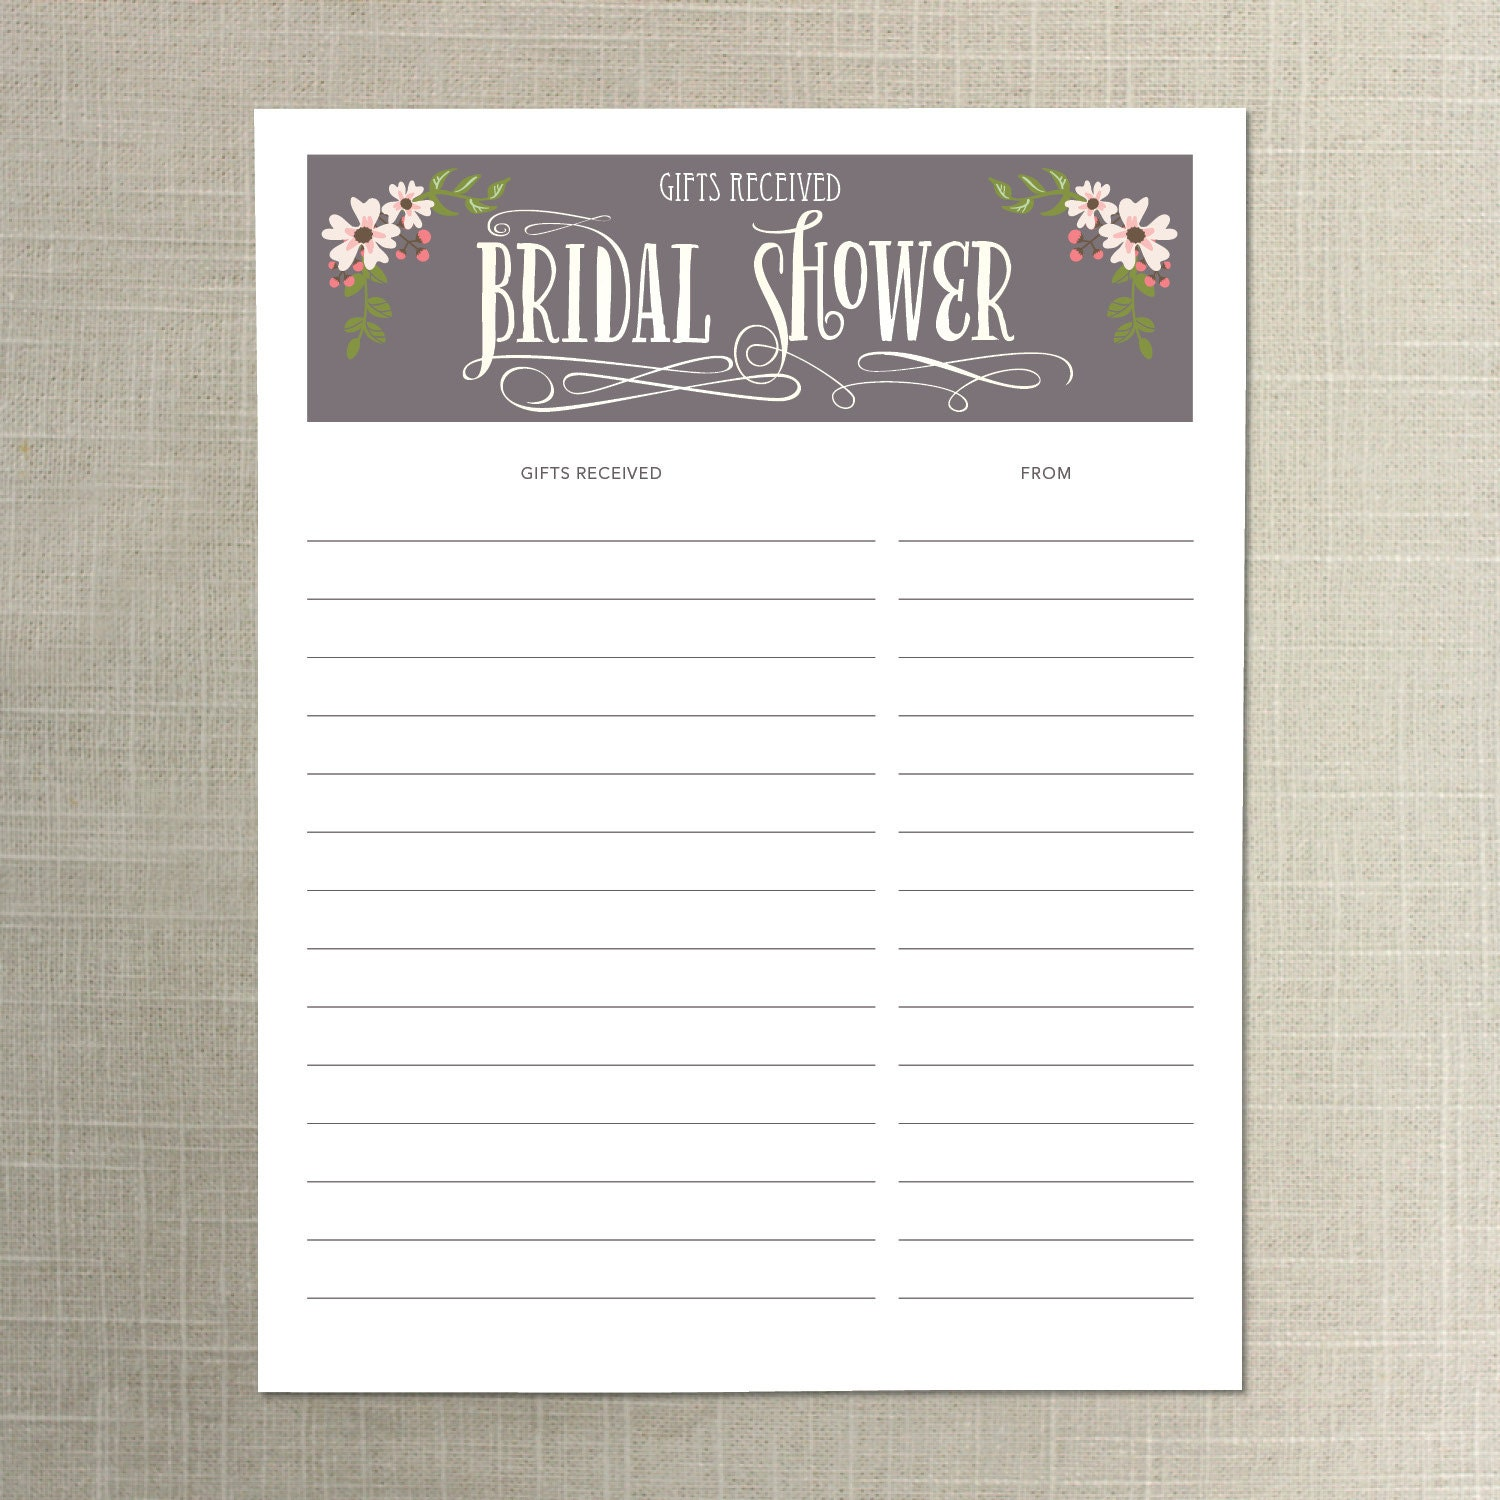 Instant Download Bridal Shower Gift List Gifts Received